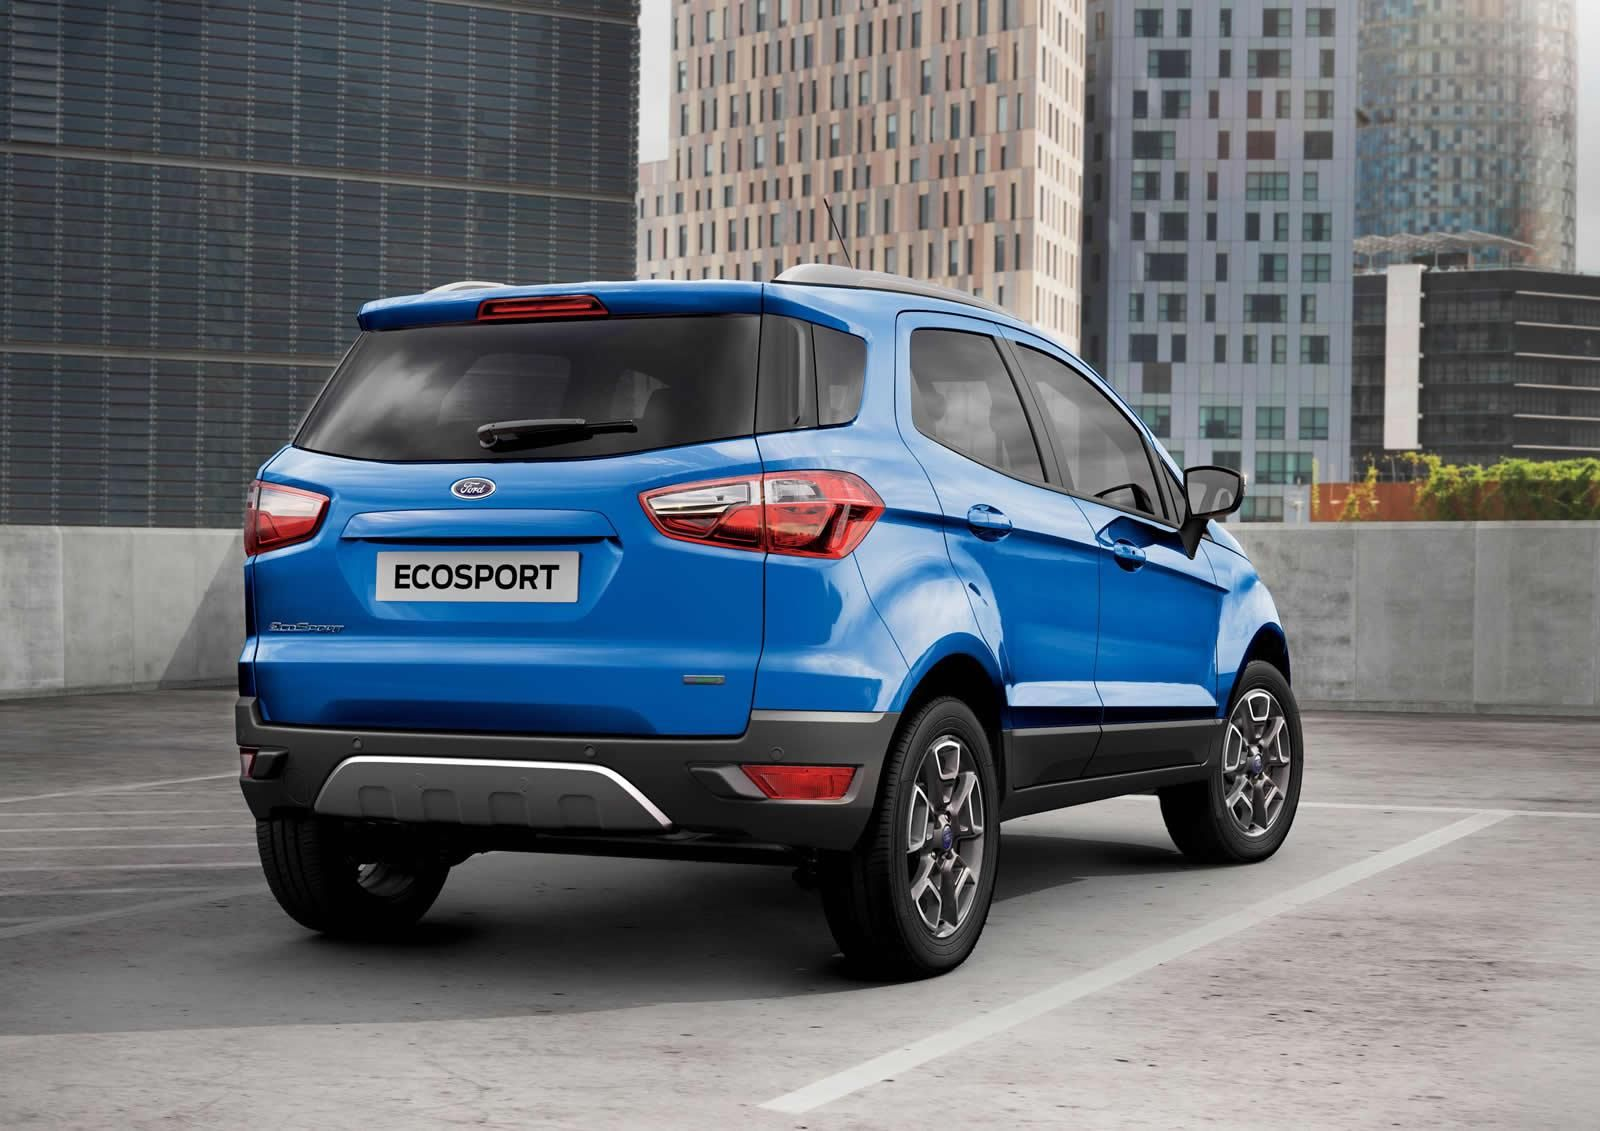 2017 Ford Ecosport Facelift India Ford ecosport, Ford